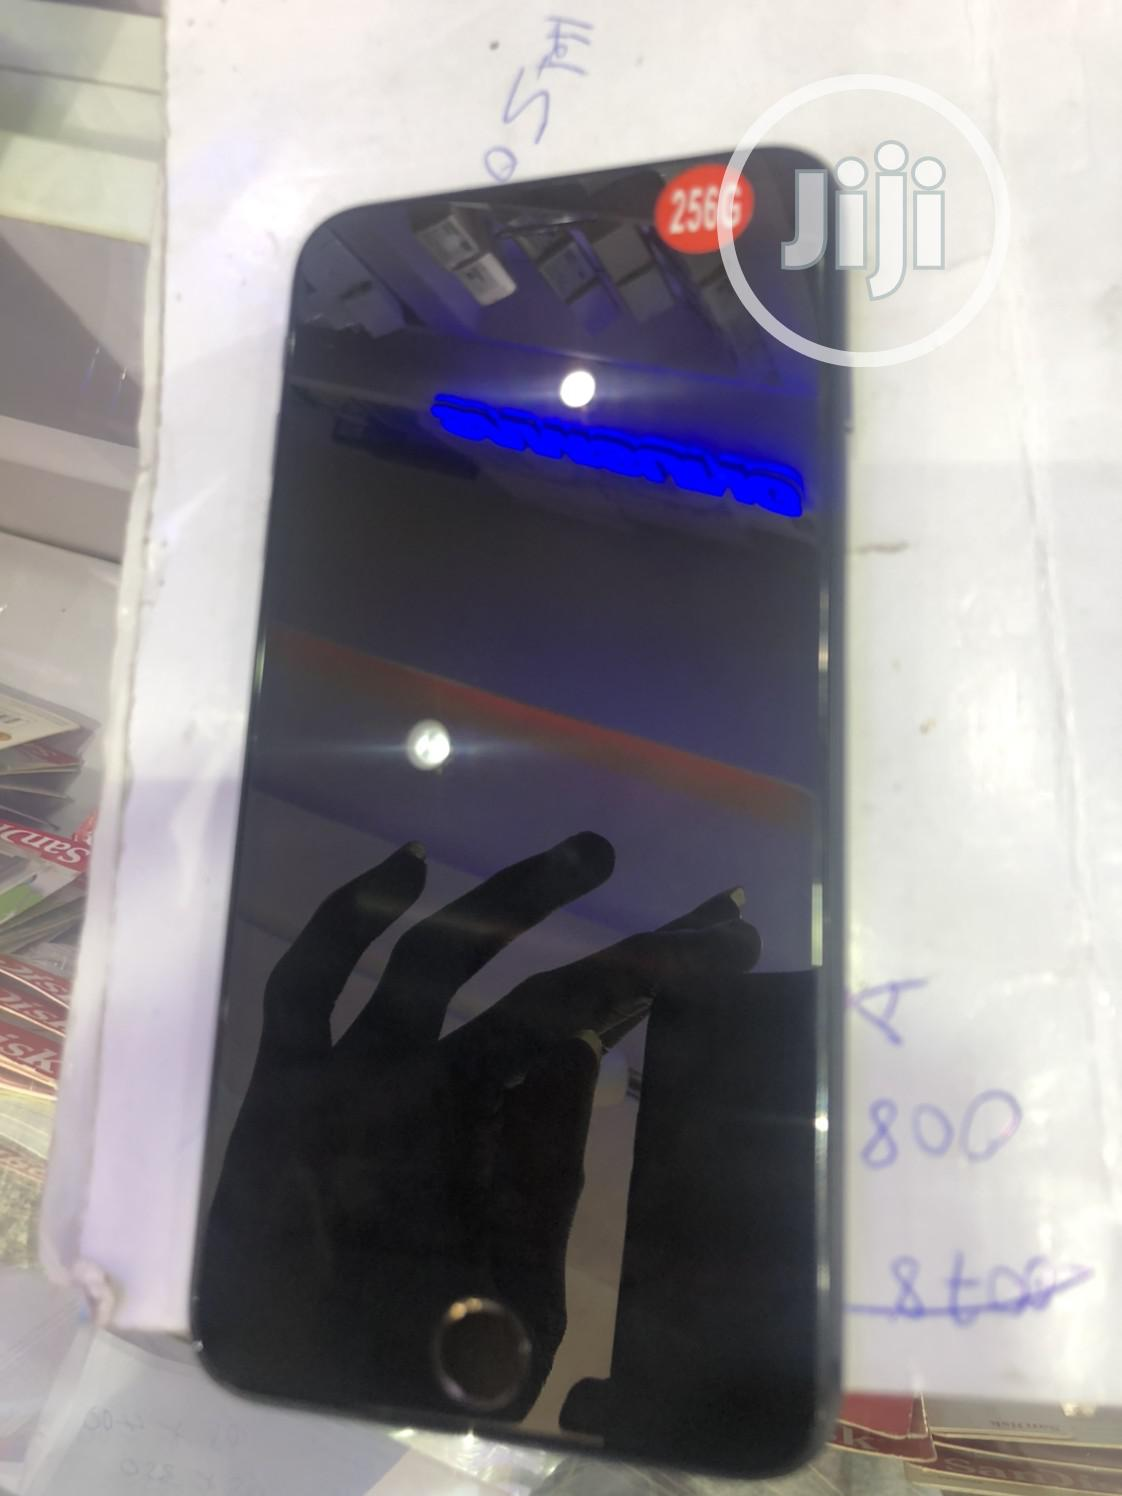 Apple iPhone 8 Plus 256 GB Black | Mobile Phones for sale in Wuse 2, Abuja (FCT) State, Nigeria